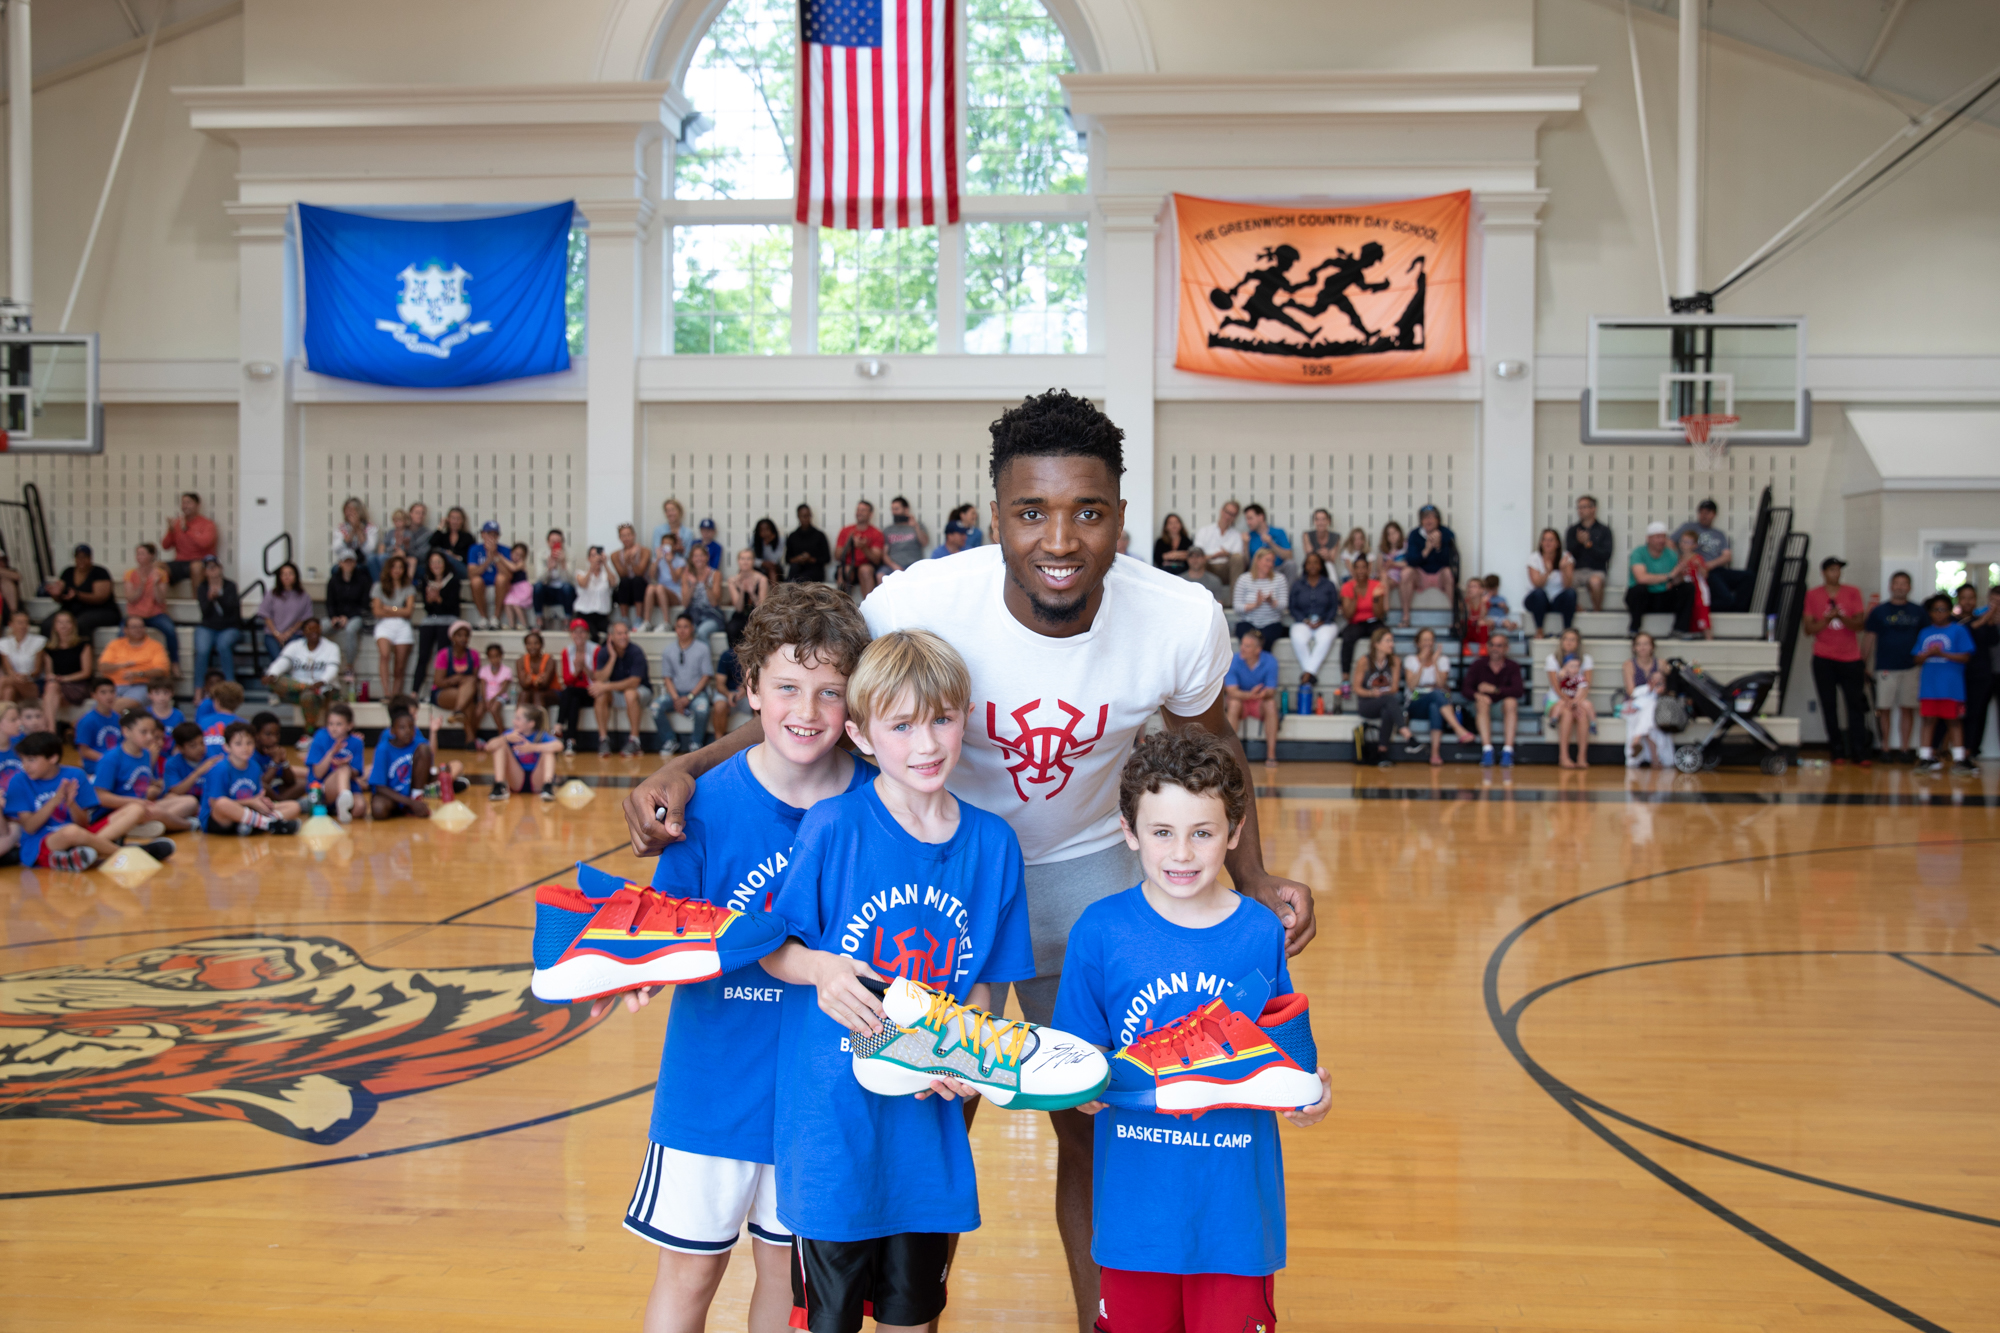 190602-donovan-mitchell-basketball-camp-grades1-4-WH-1465 copy.jpg